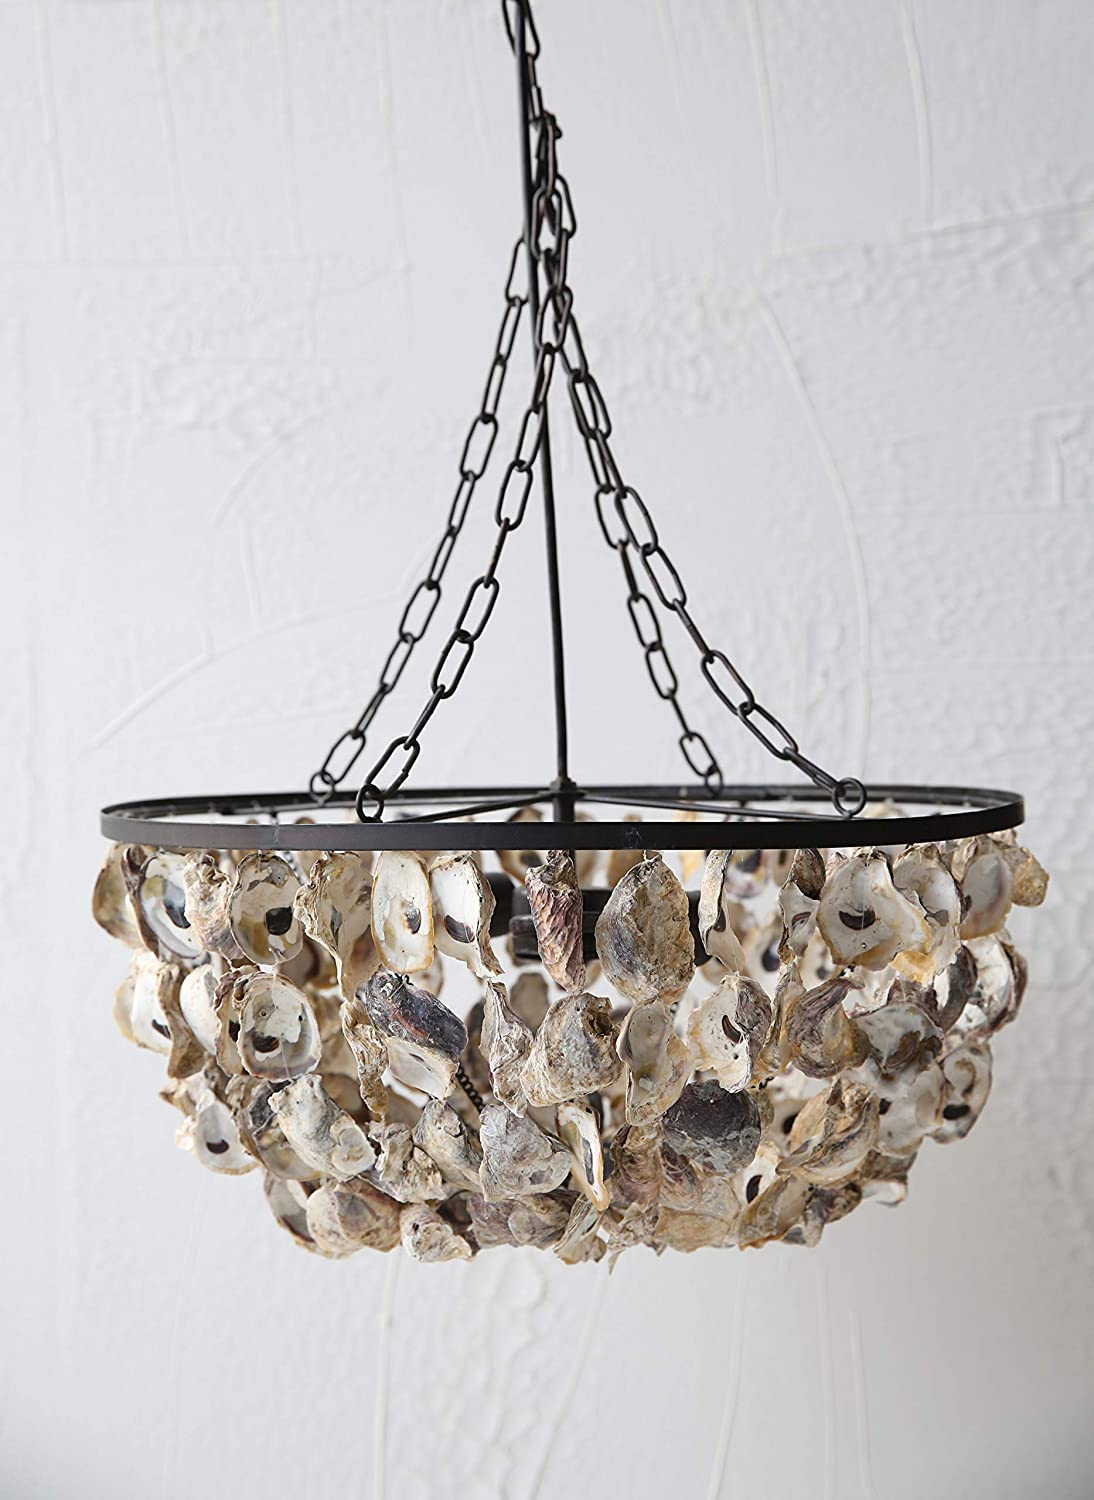 Creative Co-op Round Oyster Shell Chandelier with 2 Lights